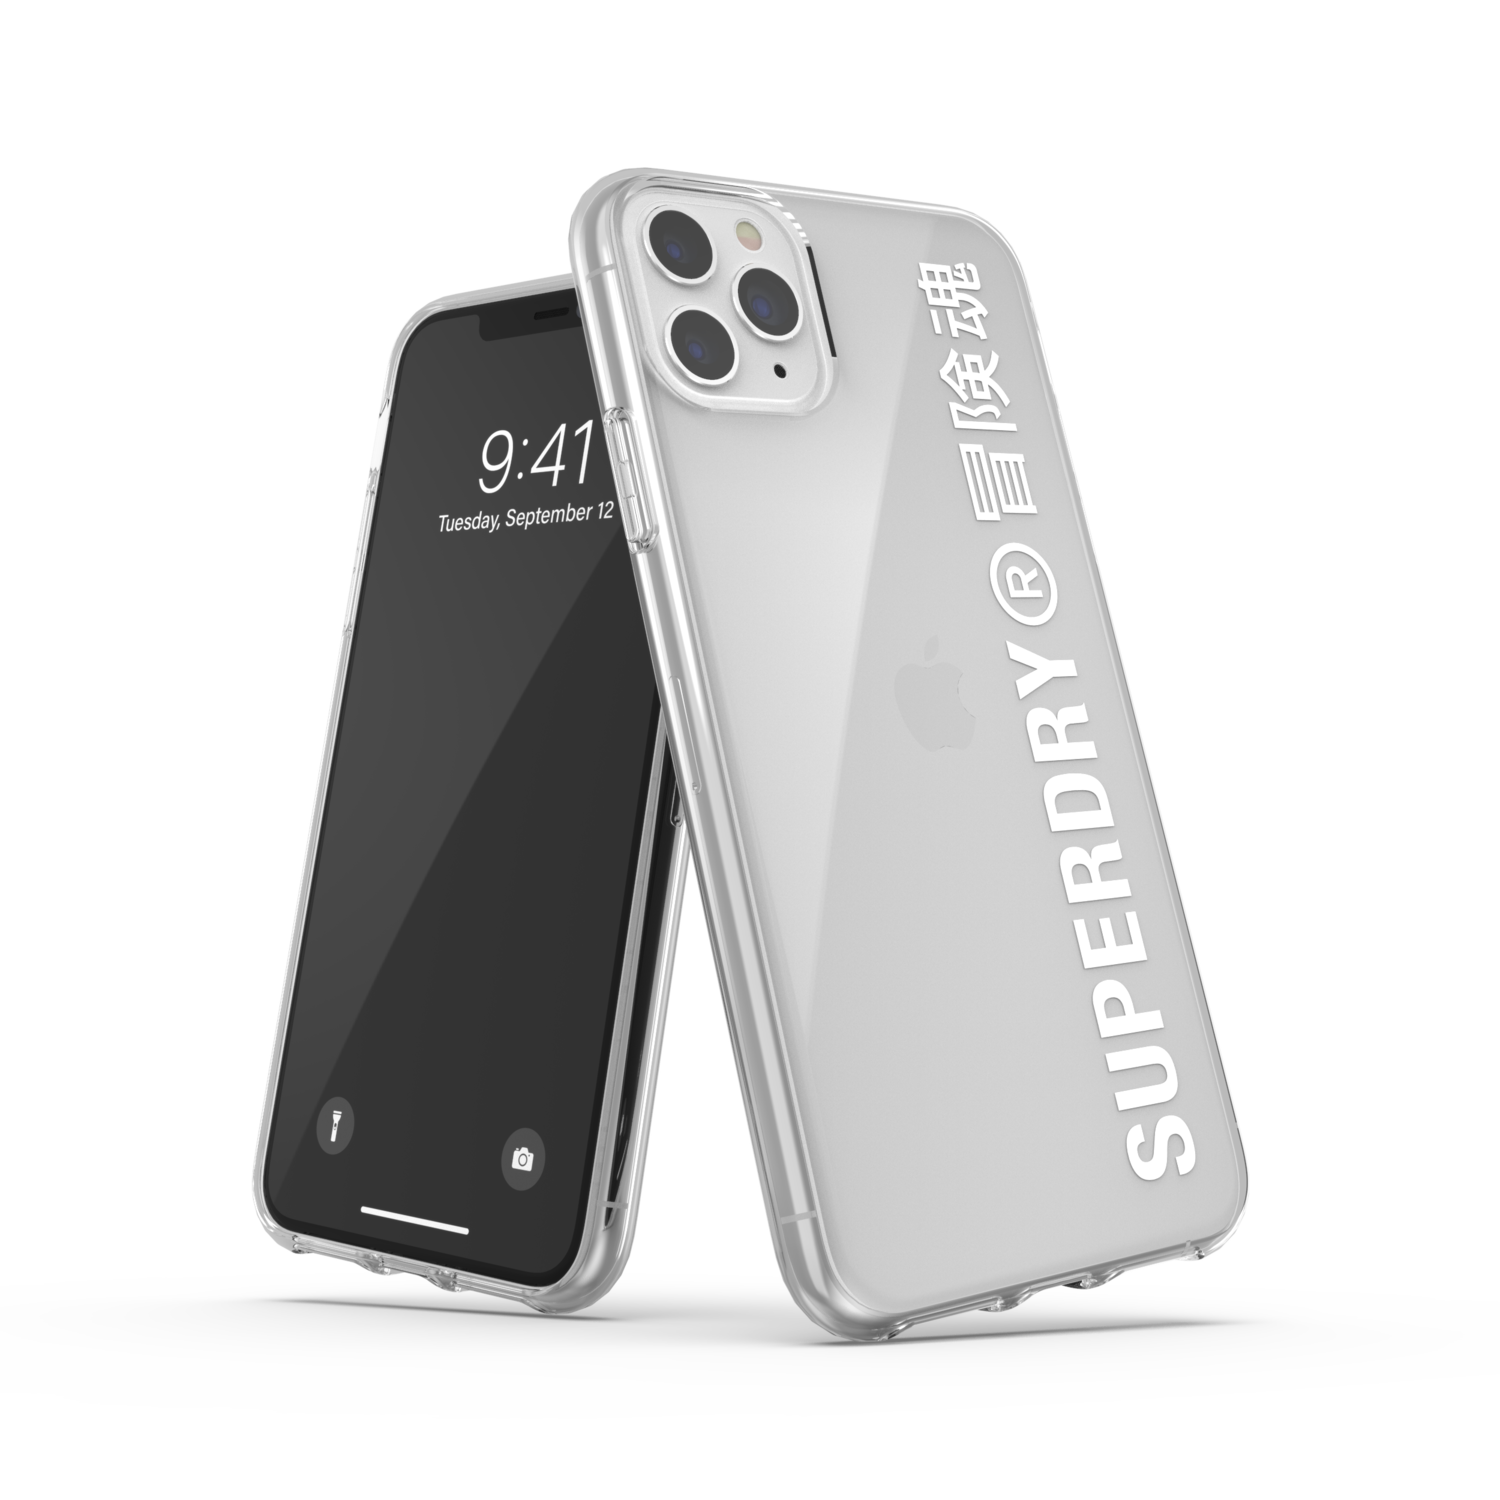 Superdry Snap Case Clear FW20/SS21 for iPhone 11 Pro Max clear/white